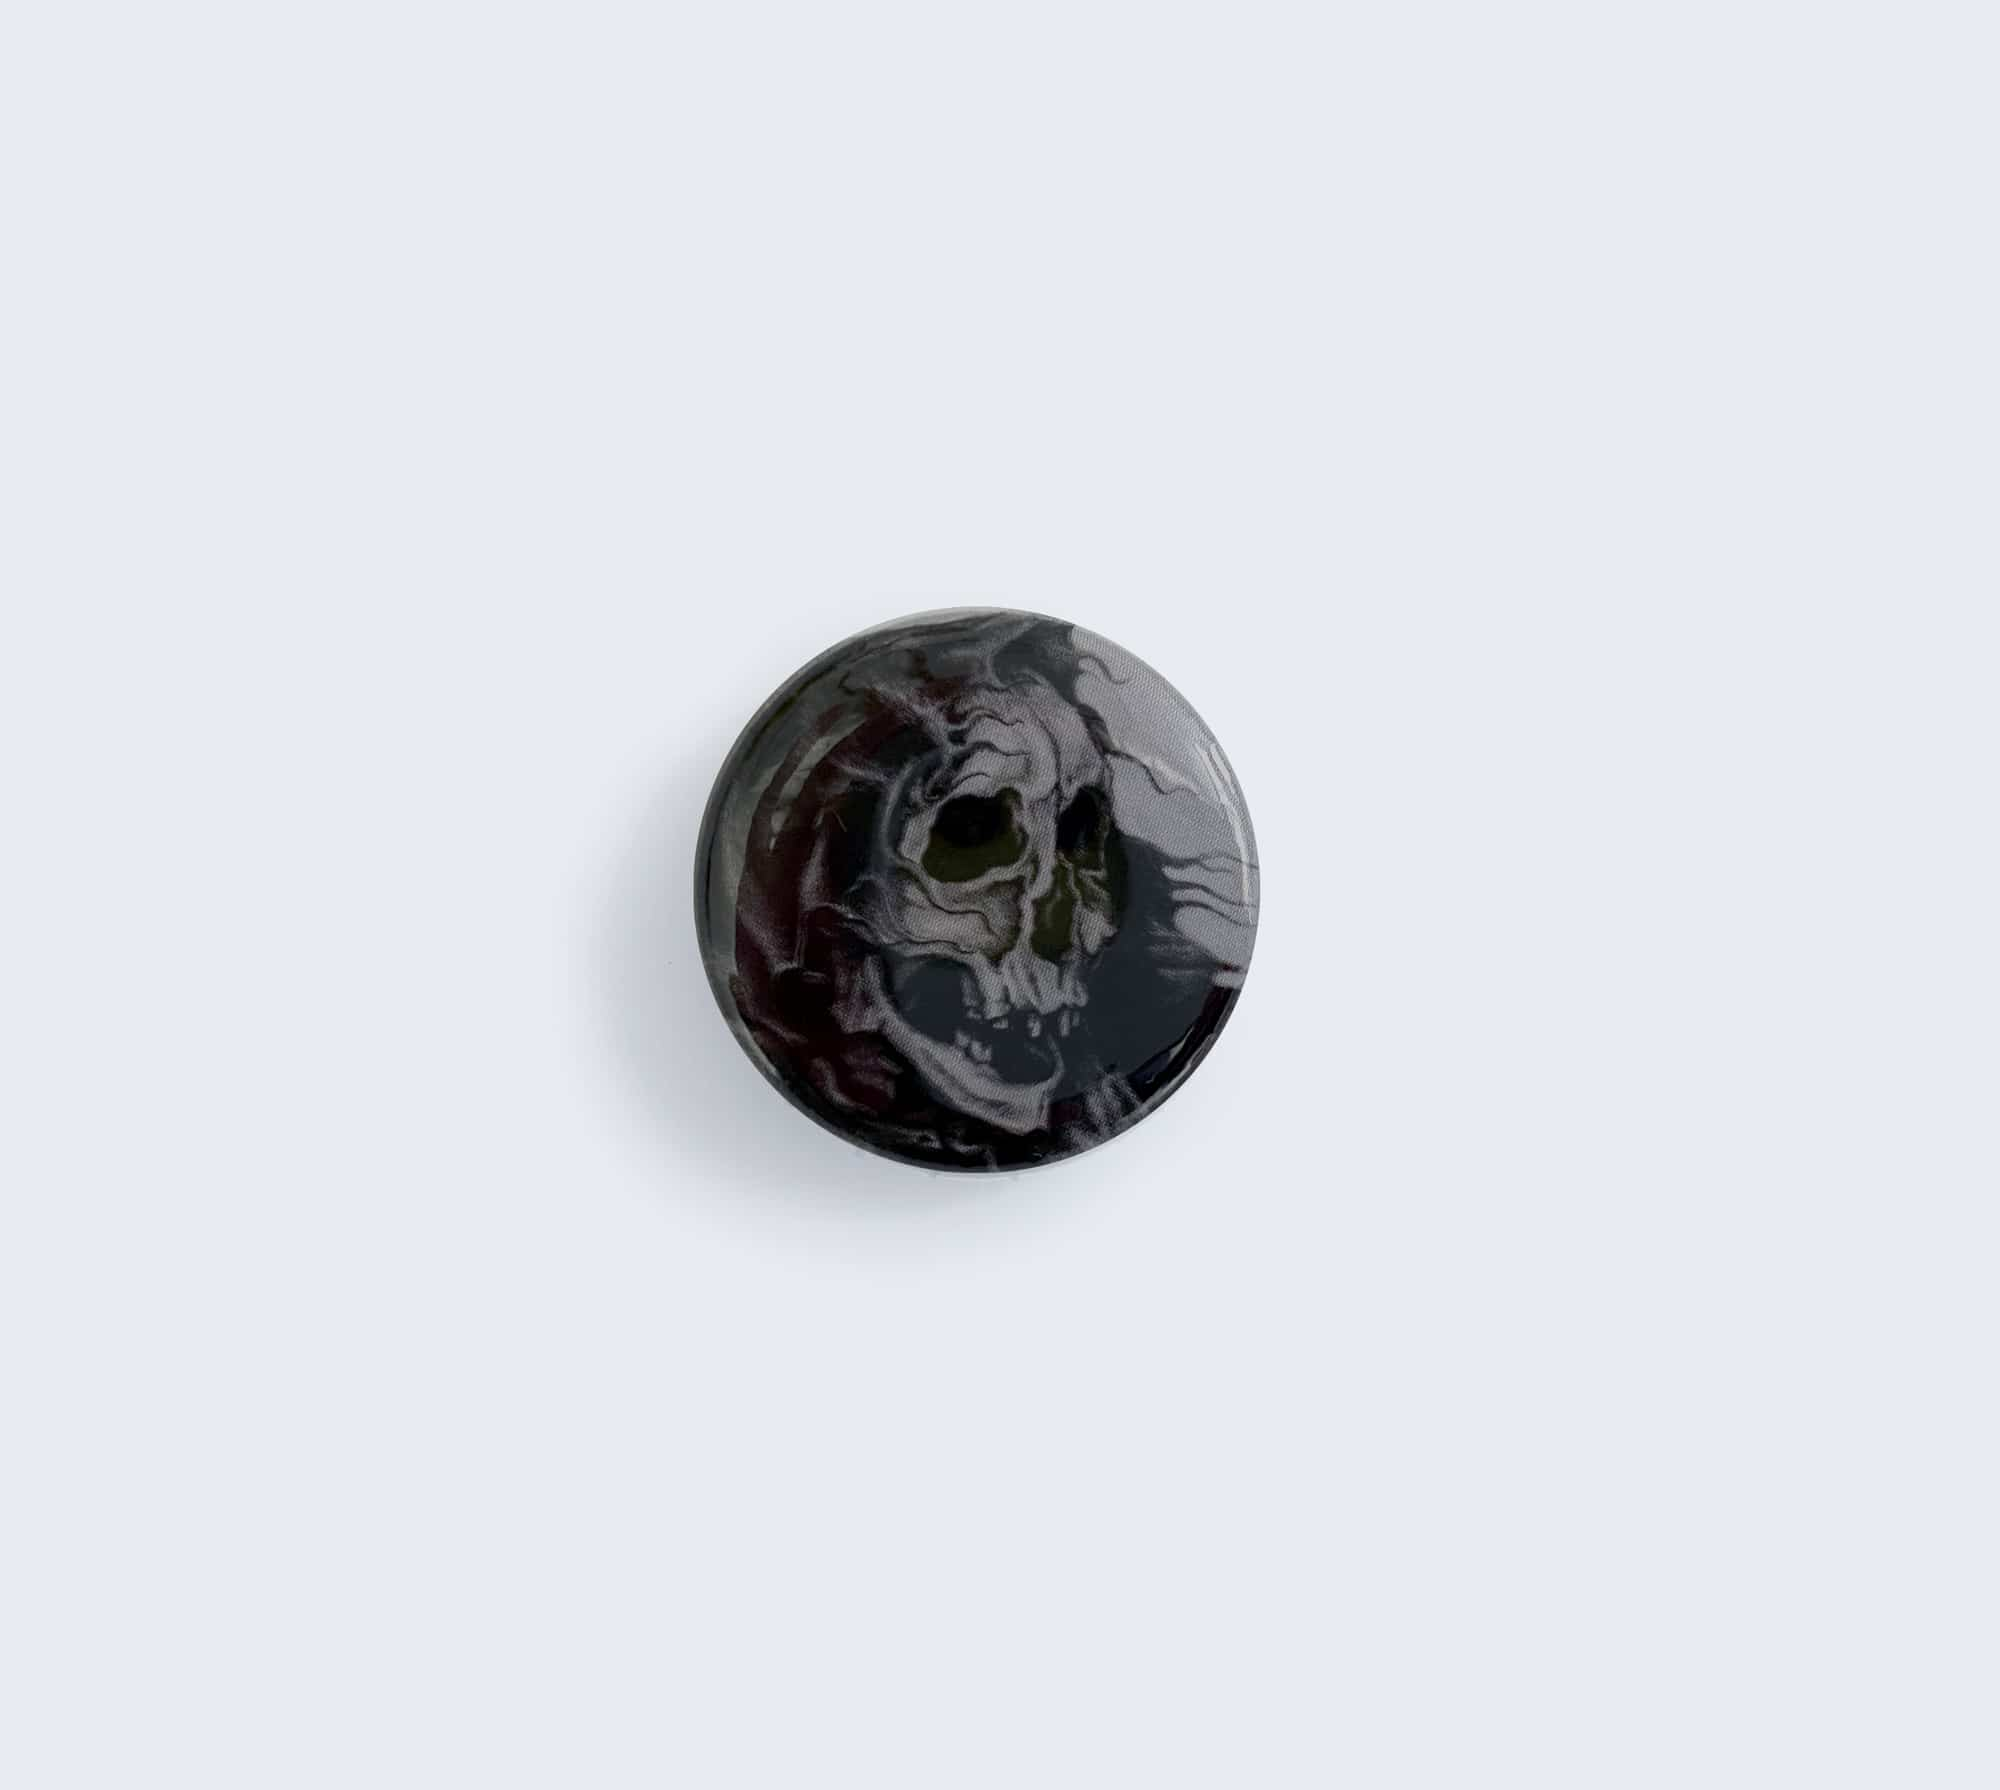 Black Skeleton Pin with Artwork by Wailing Wizard